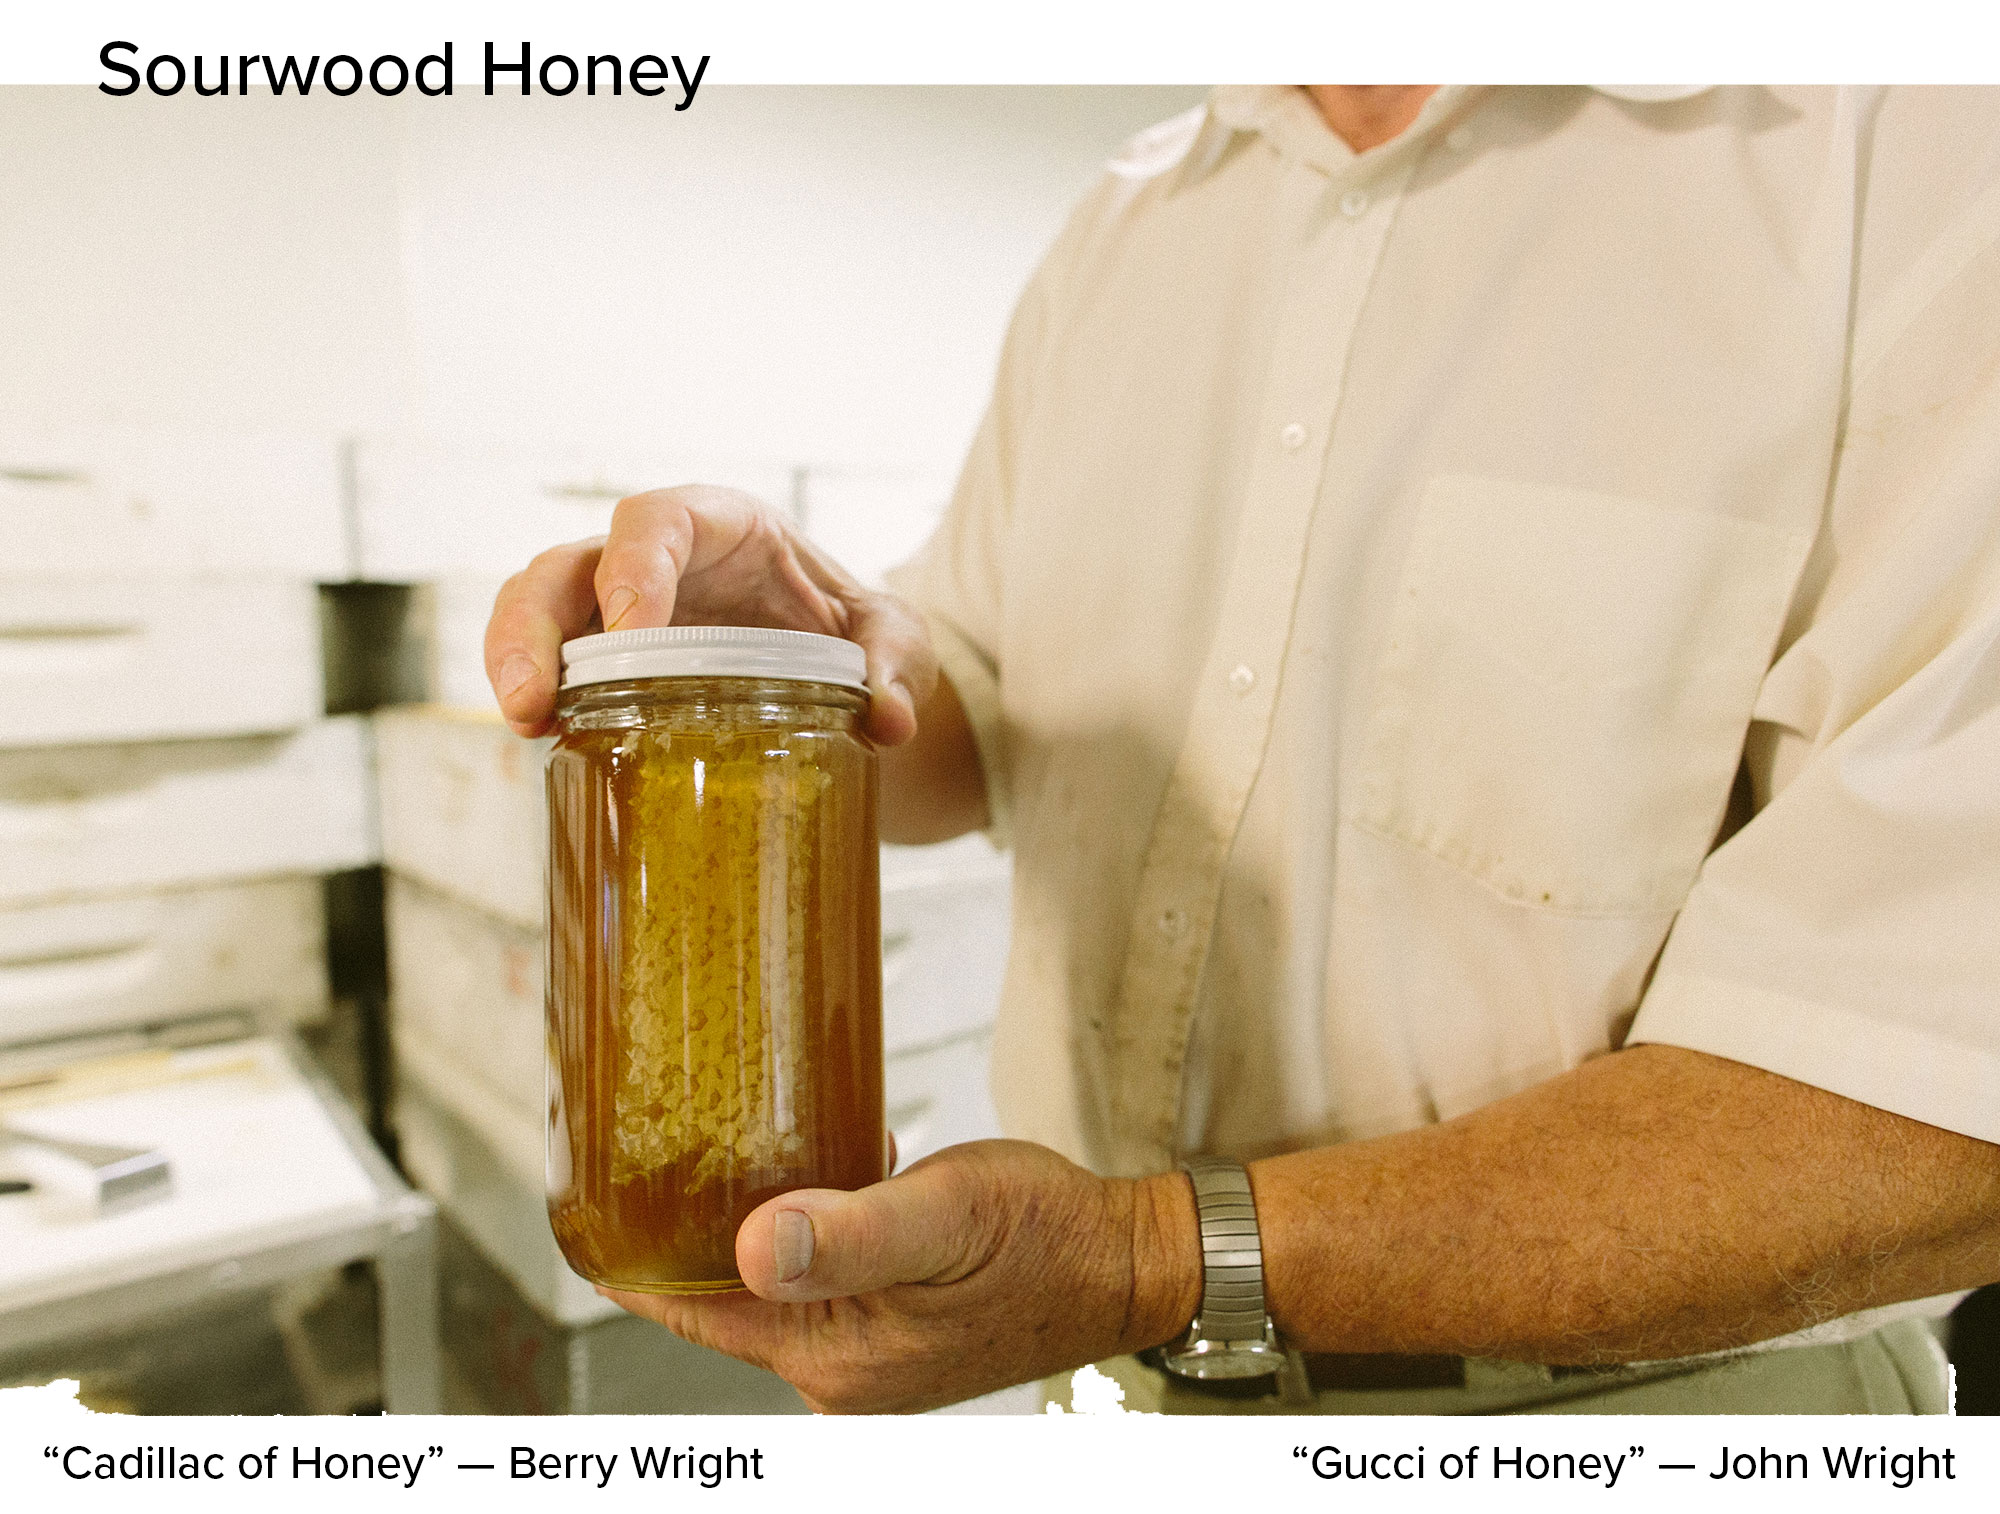 Sourwood Honey